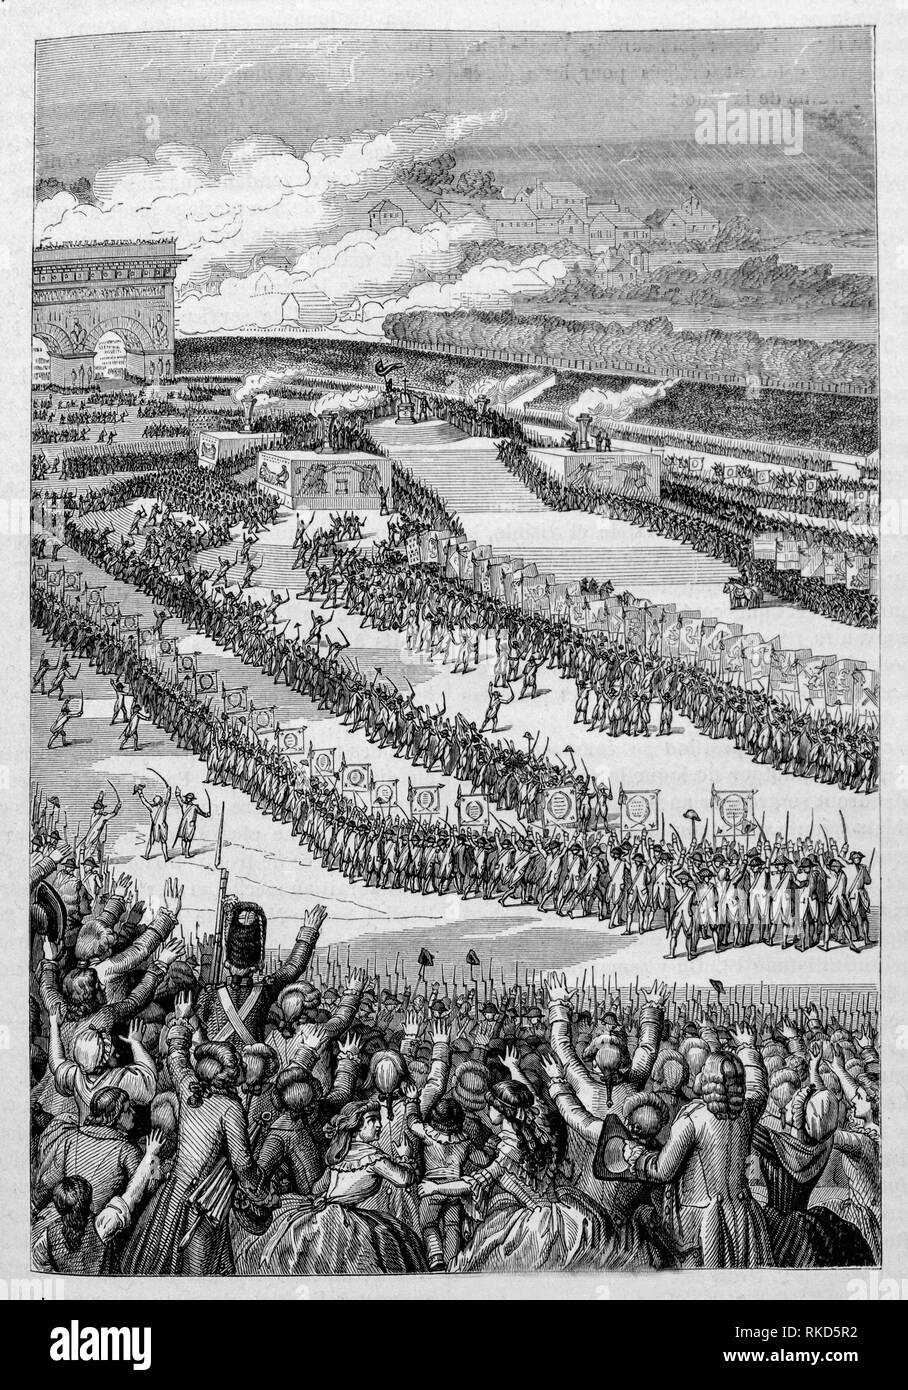 France. ''Fête de la Federation'' 14 july 1790 on Champs de Mars, at Paris ( drawing 1890). - Stock Image